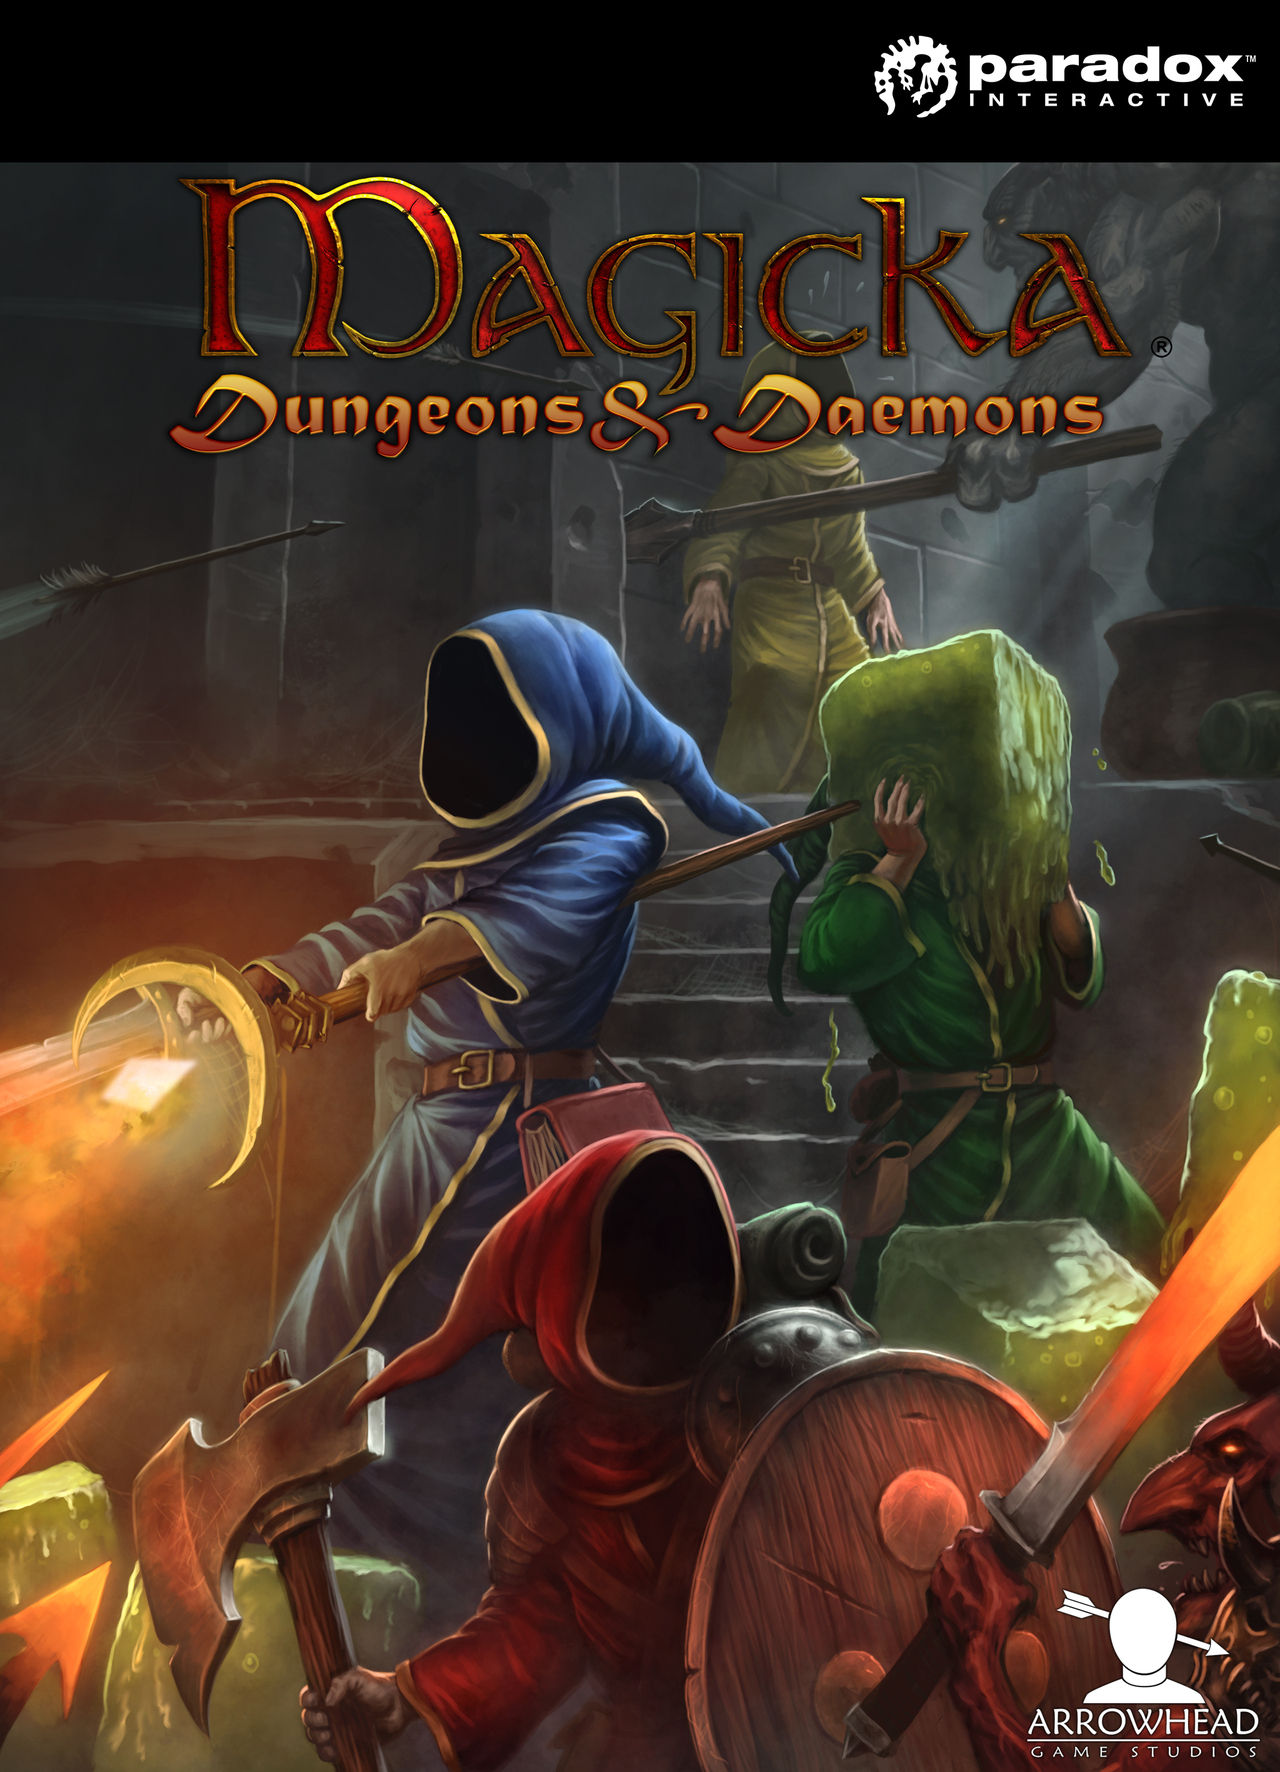 Magicka: Dungeons and Daemons 2012 pc game Img-1